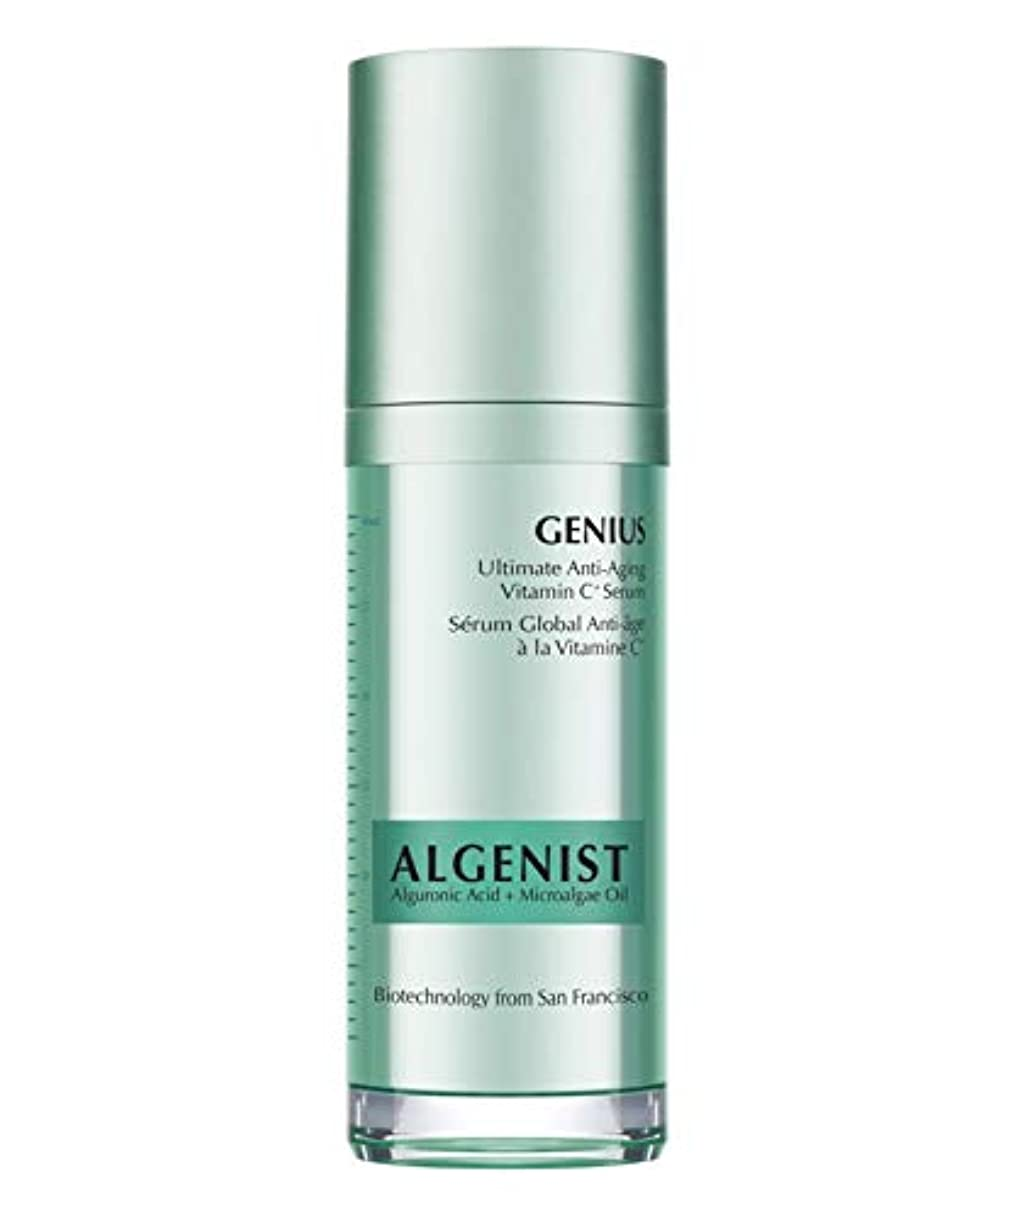 ナンセンス舞い上がるラフ睡眠Algenist Genius Ultimate Anti-Aging Vitamin C Serum 30ml